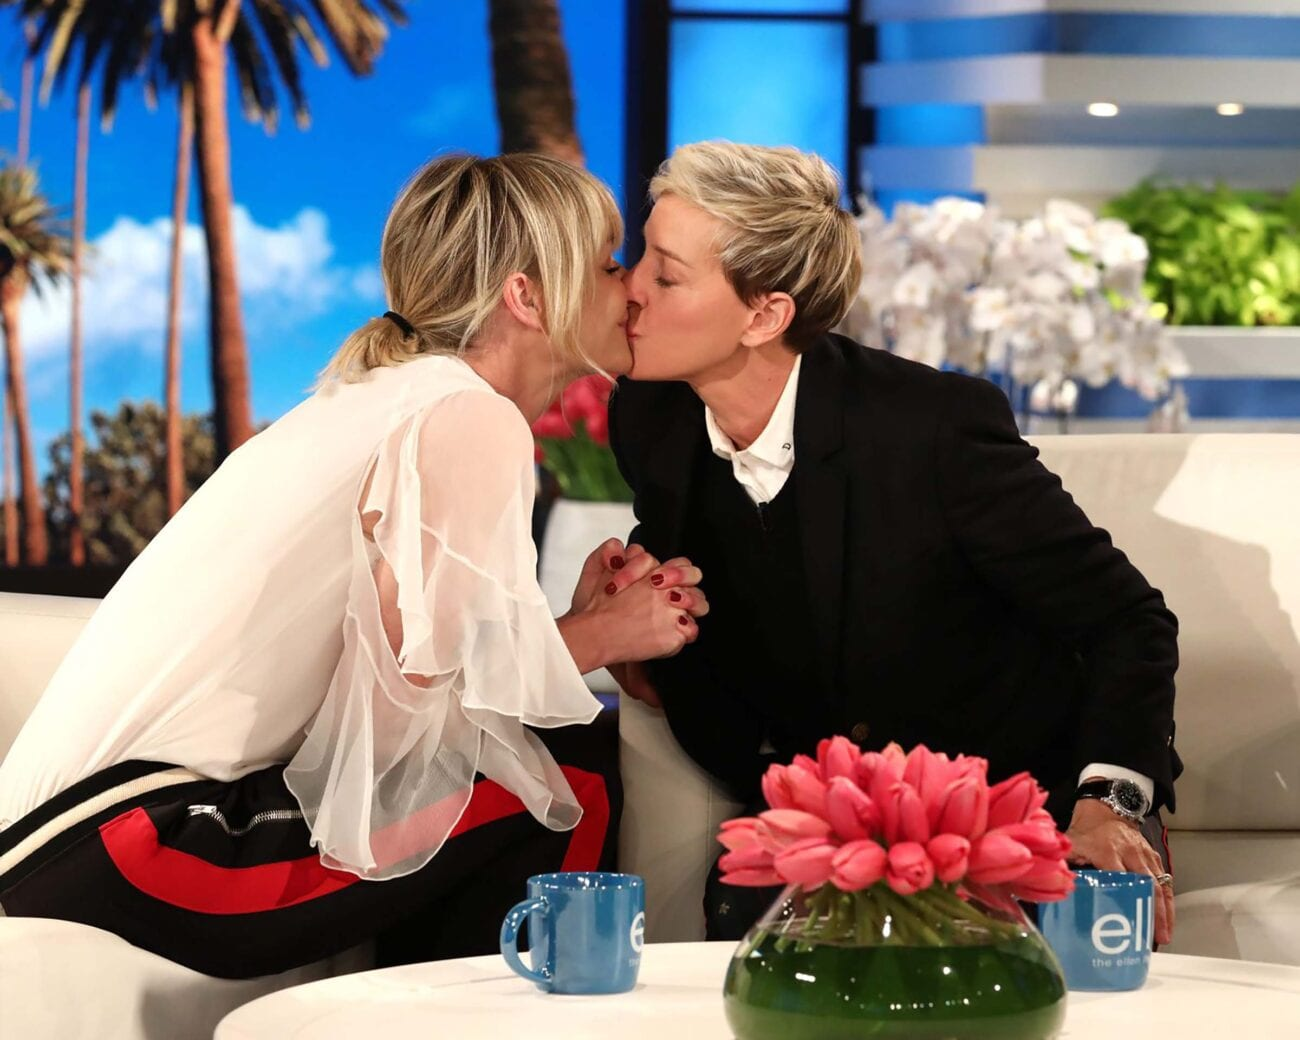 Rumors are once again flying that Ellen DeGeneres and Portia de Rossi are getting a divorce. Here's a timeline of their relationship.